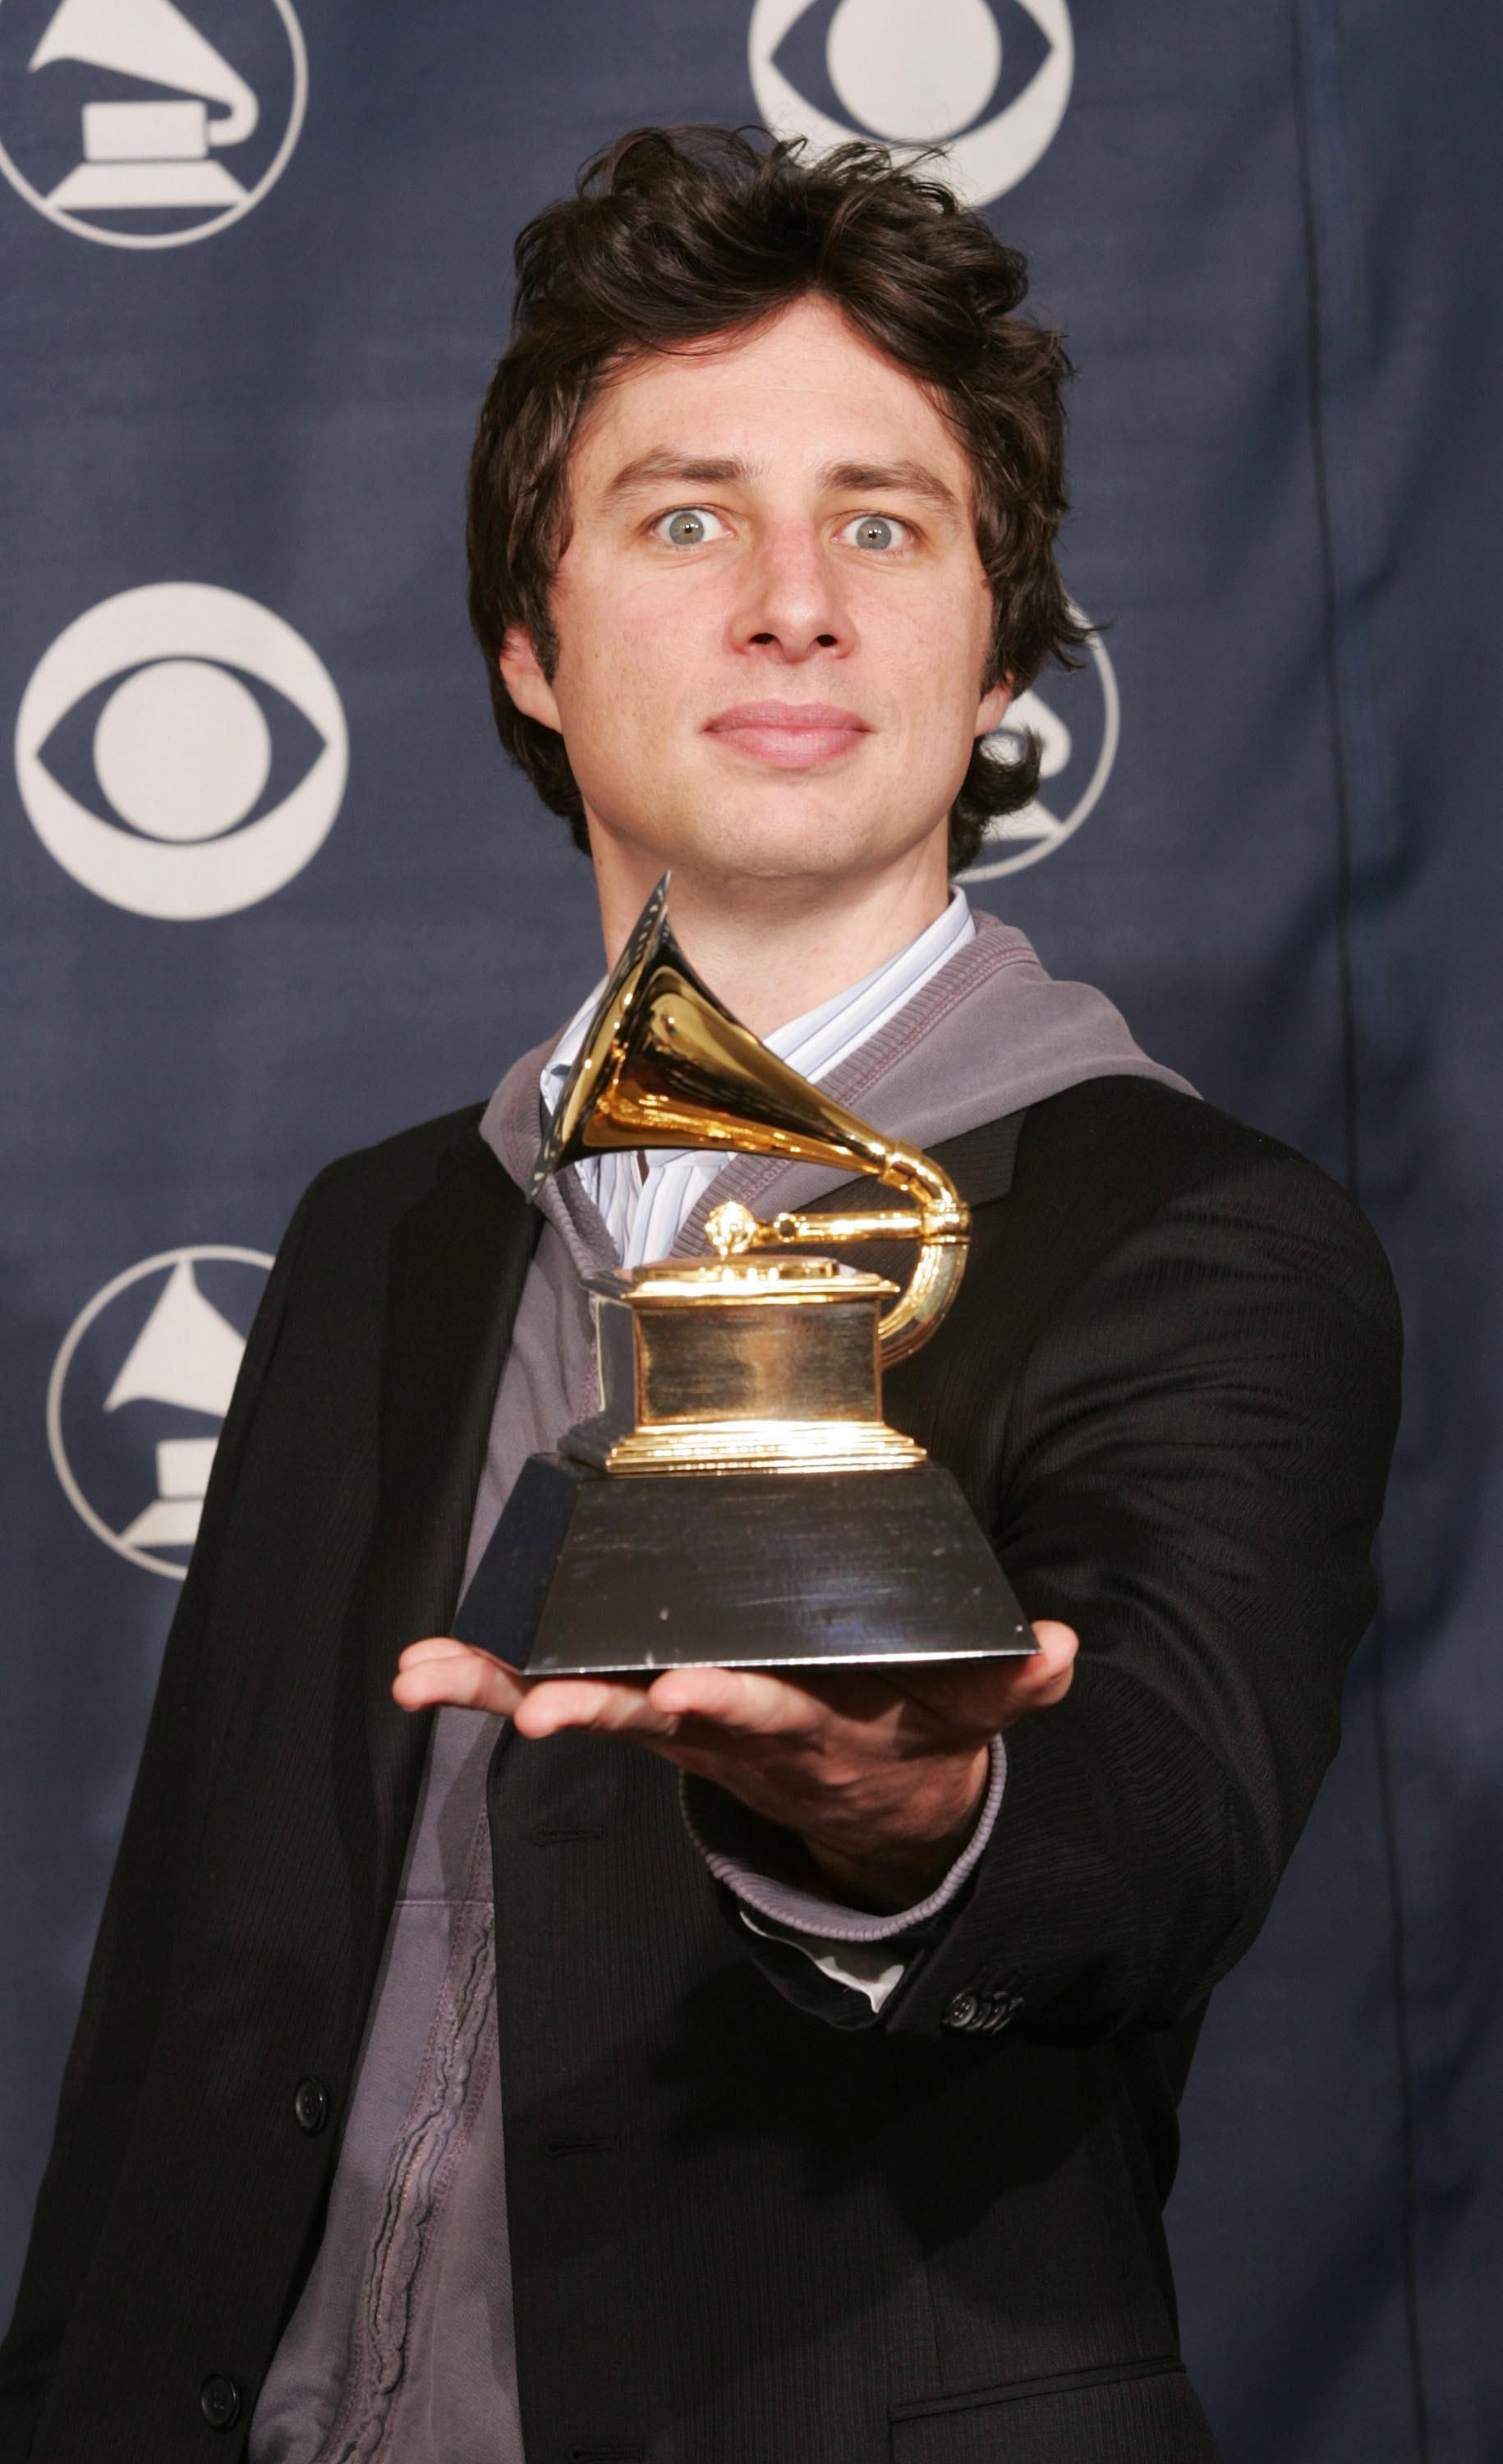 Zach Braff shows off his GRAMMY